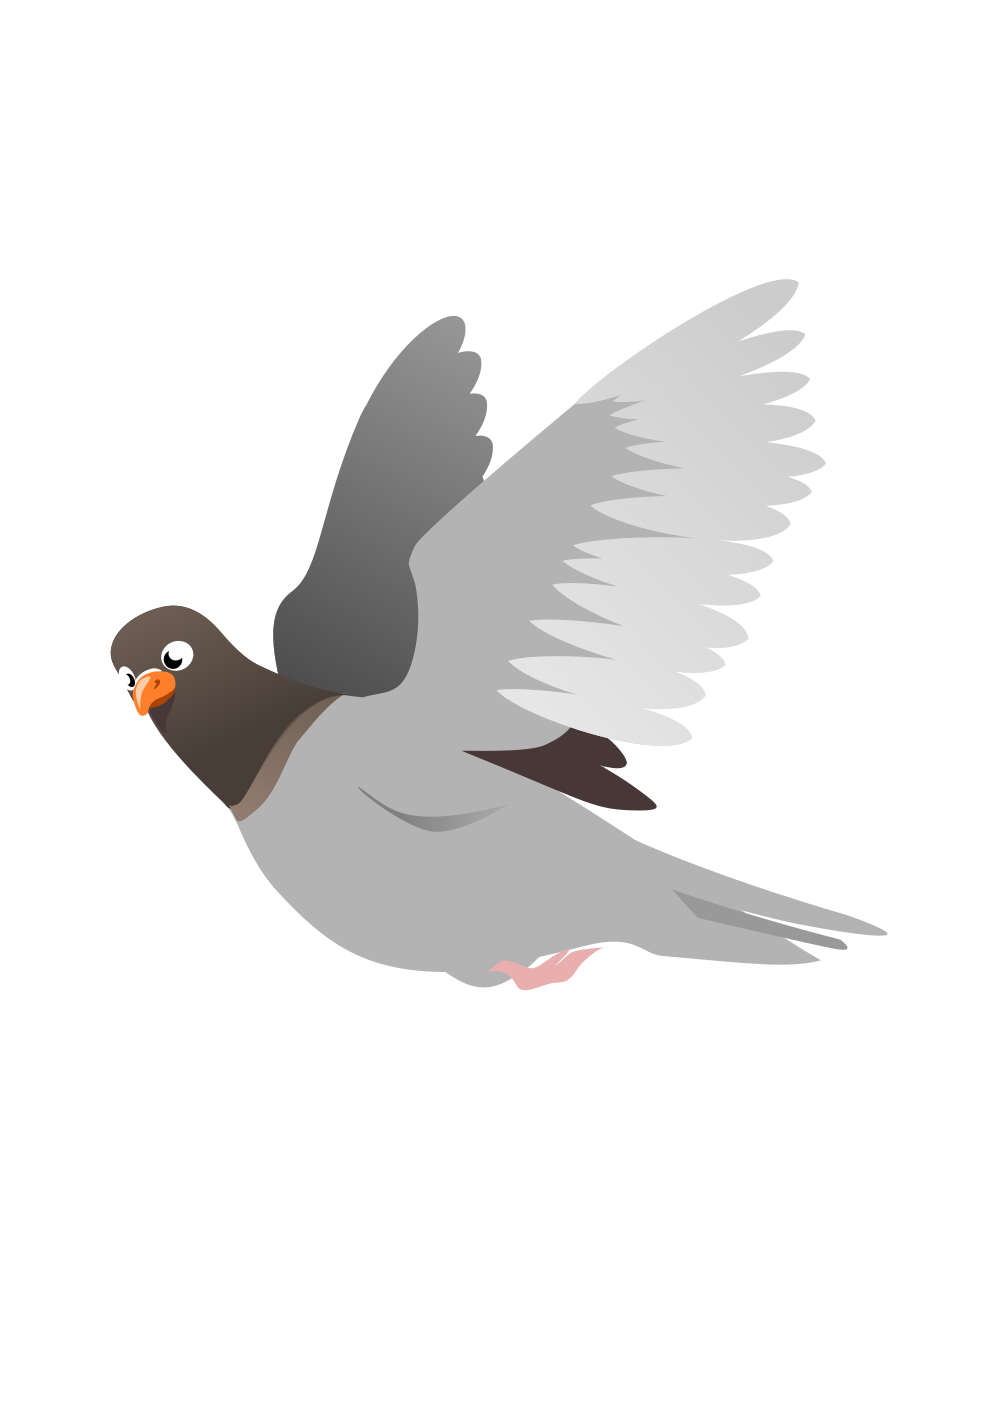 Wing clipart pigeon wing. Onlinelabels clip art a